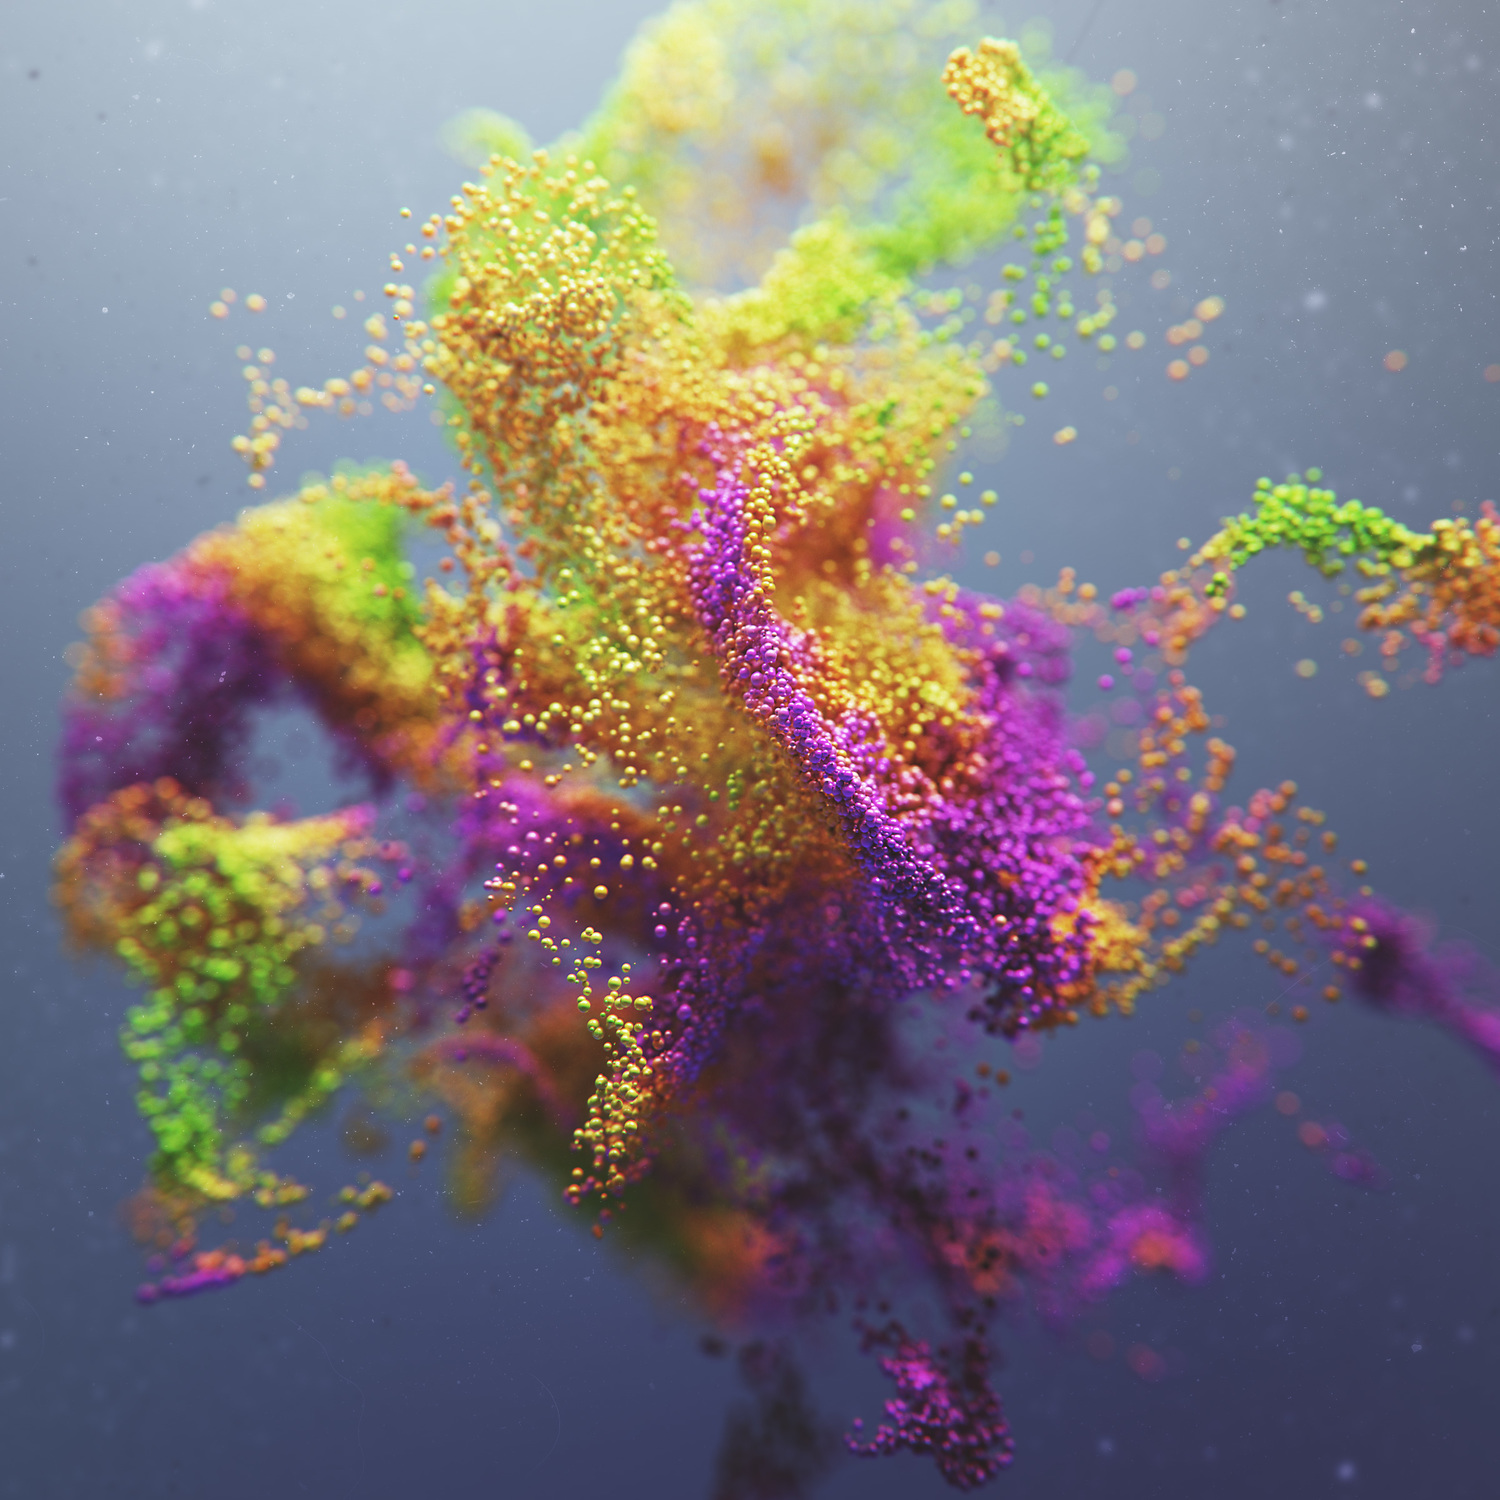 Raw Rendered Experimental D Artworks By Joey Camacho Colossal - 3d rendered experimental artworks